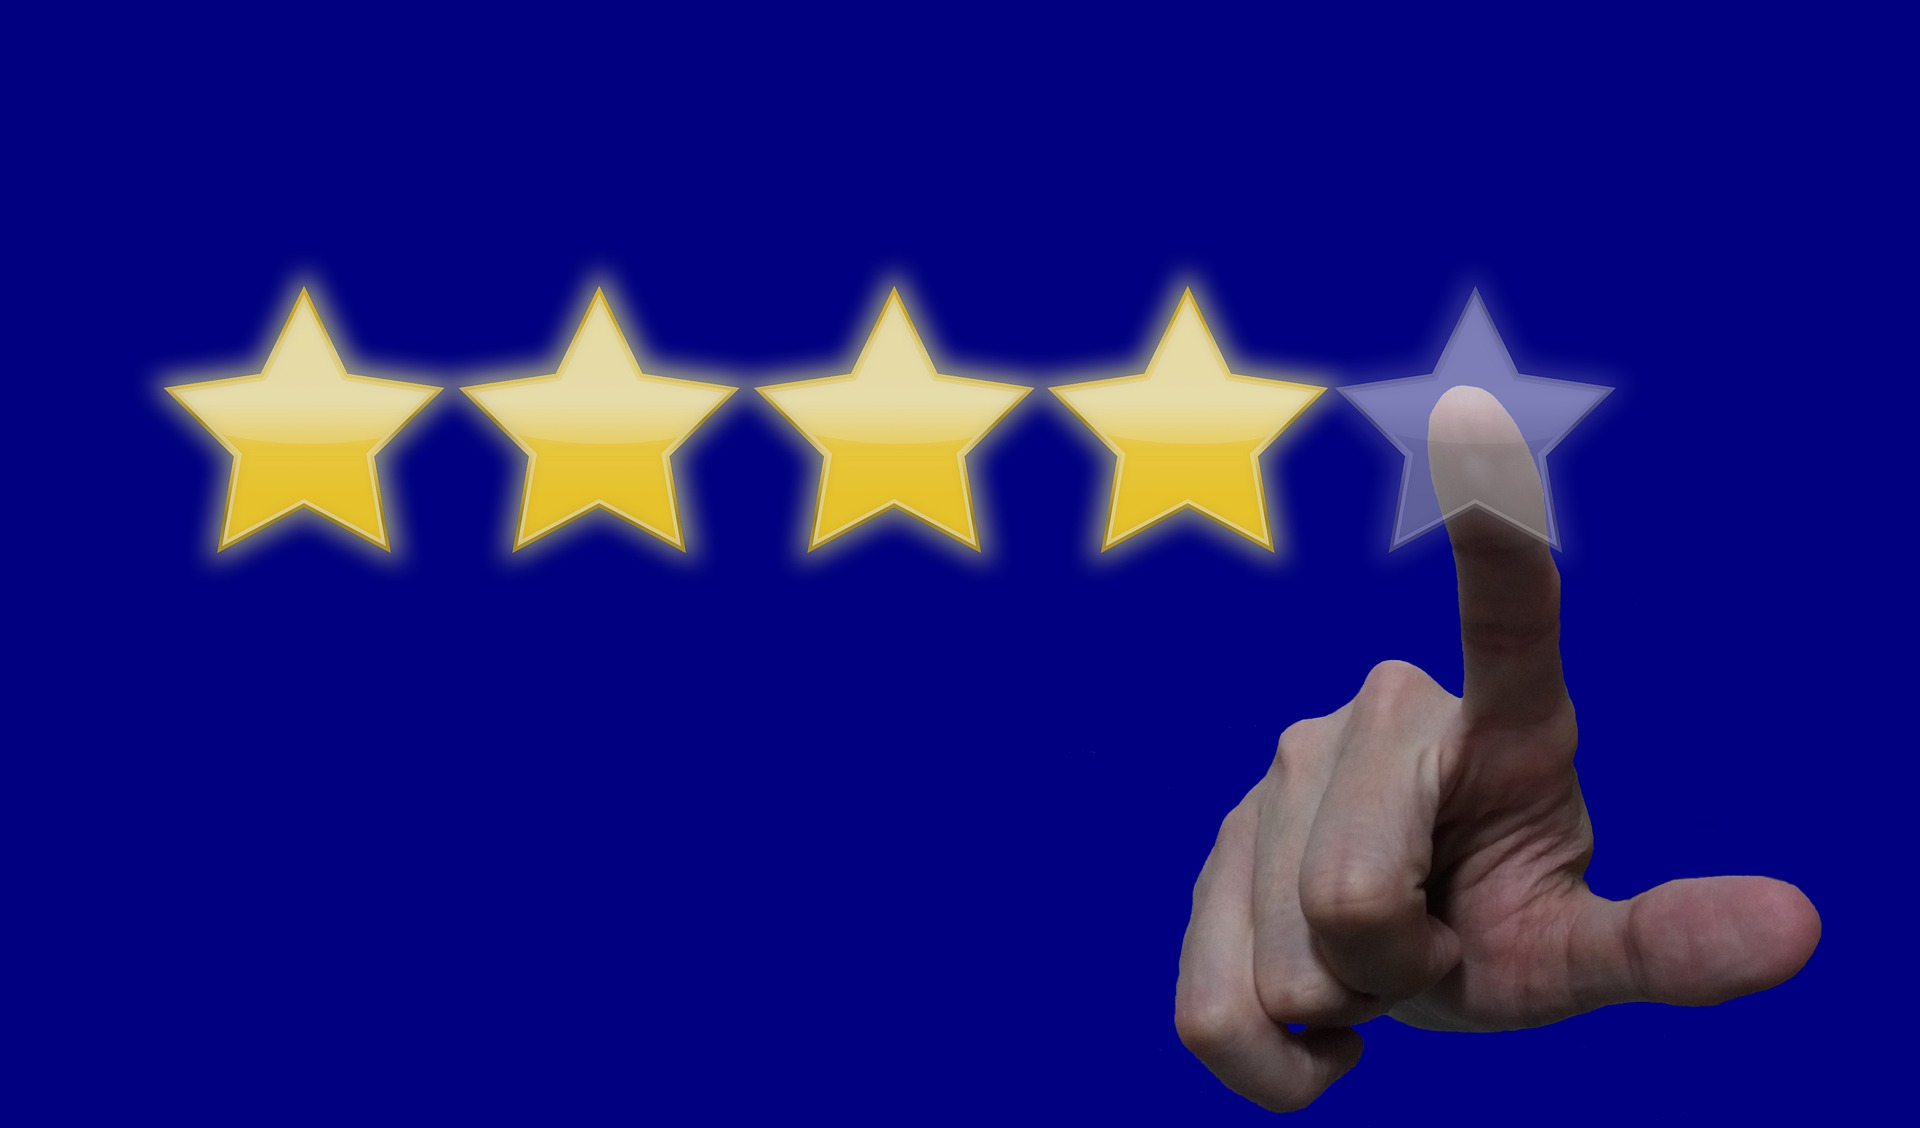 Project Managers want 5-star reviews from satisfied clients.